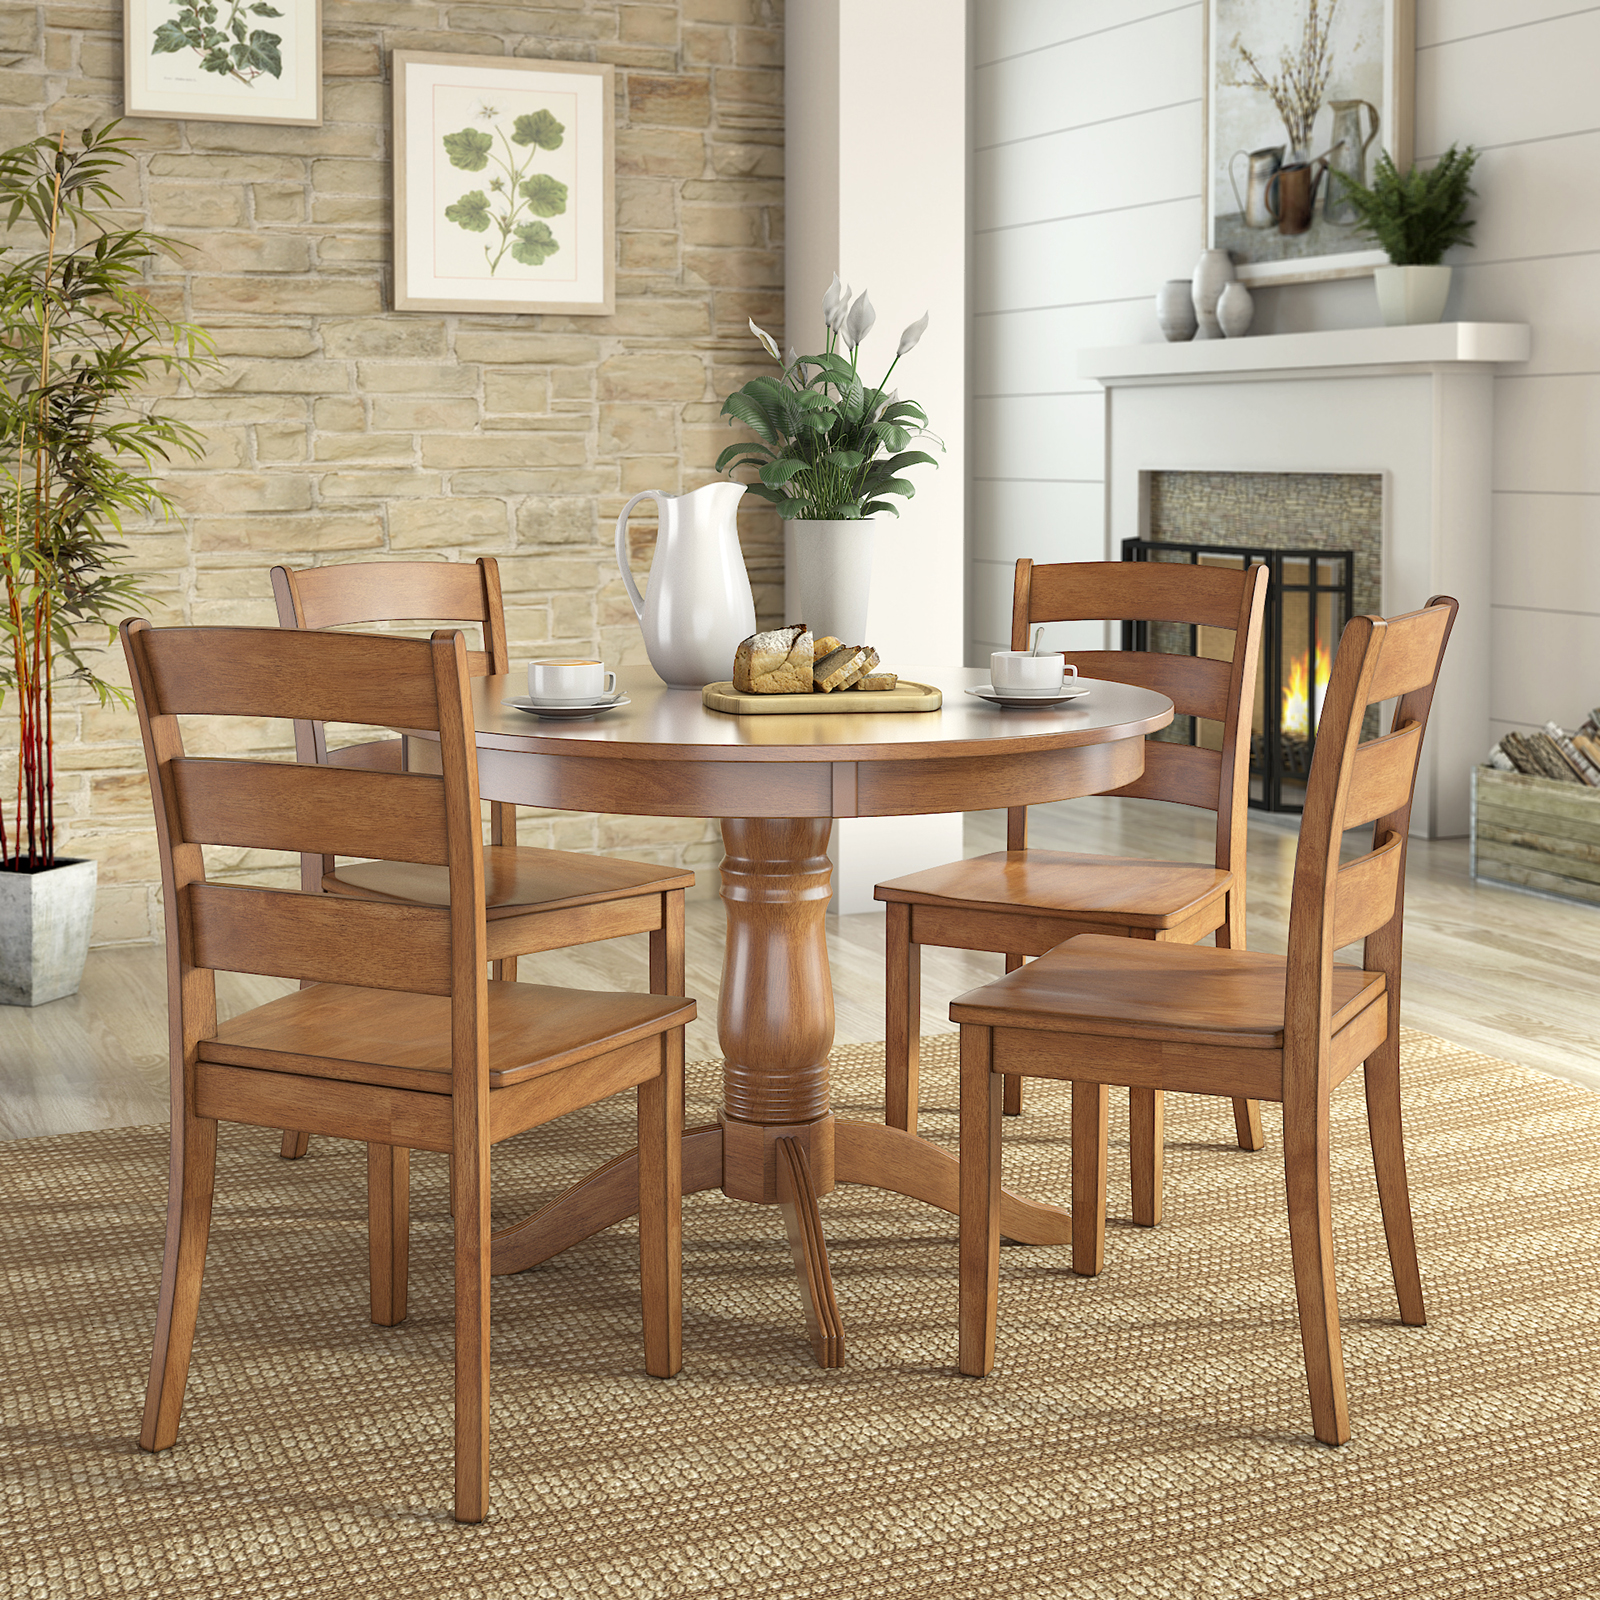 QUICK VIEW. Weston Home Lexington 5 Piece Round Dining Table Set ...